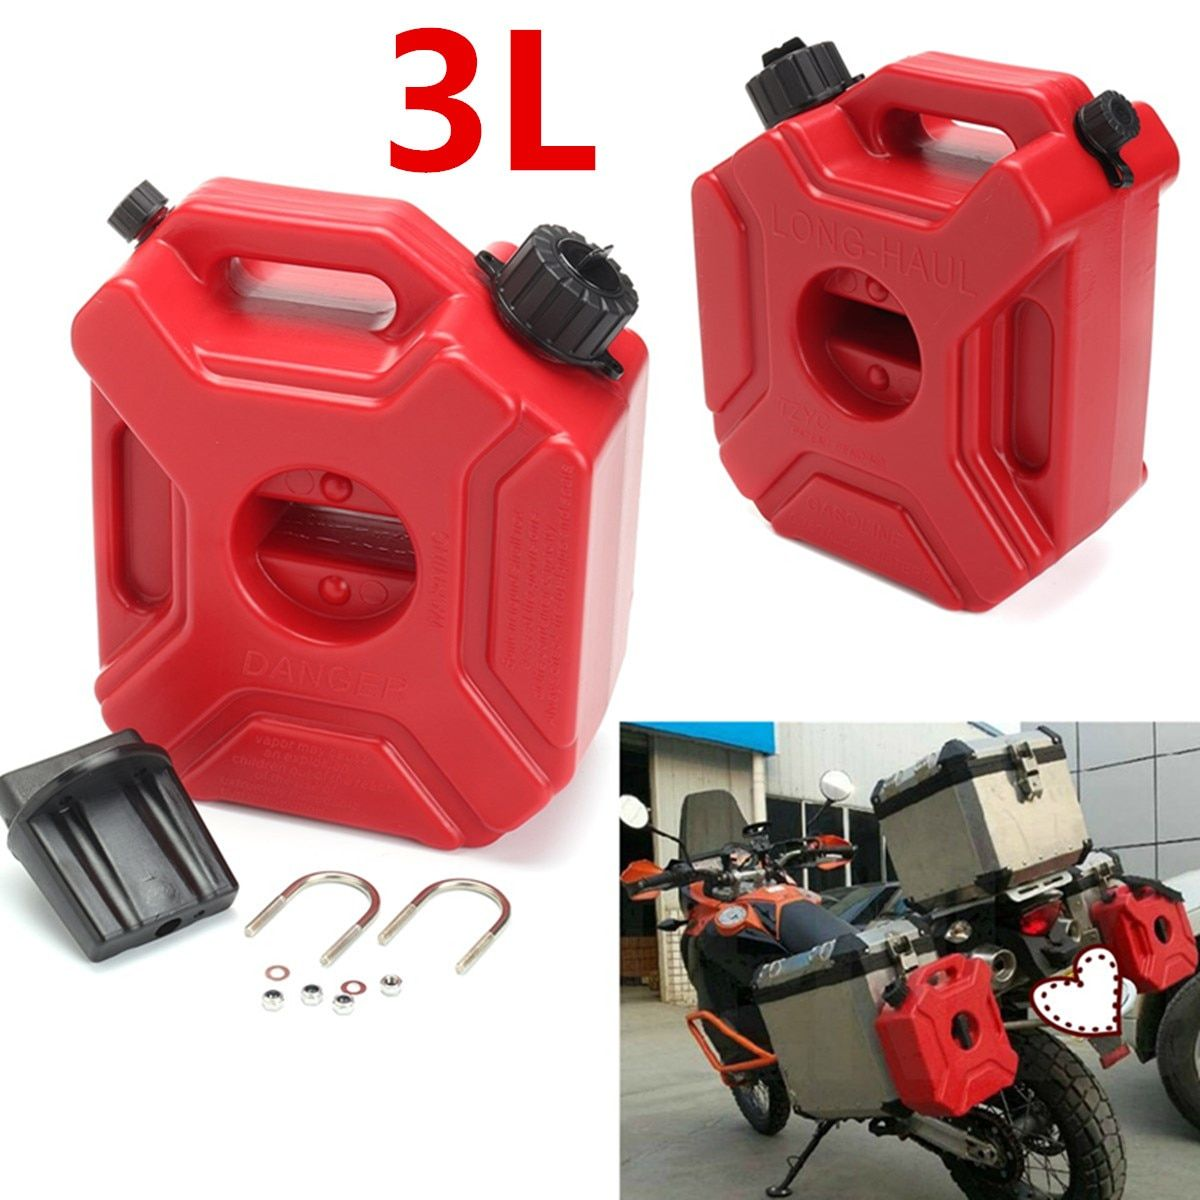 Portable Jerry Can Gas Fuel Tank Plastic Petrol Car Gokart Spare Container Gasoline Petrol Tanks Canister ATV UTV Motorcycle 3L